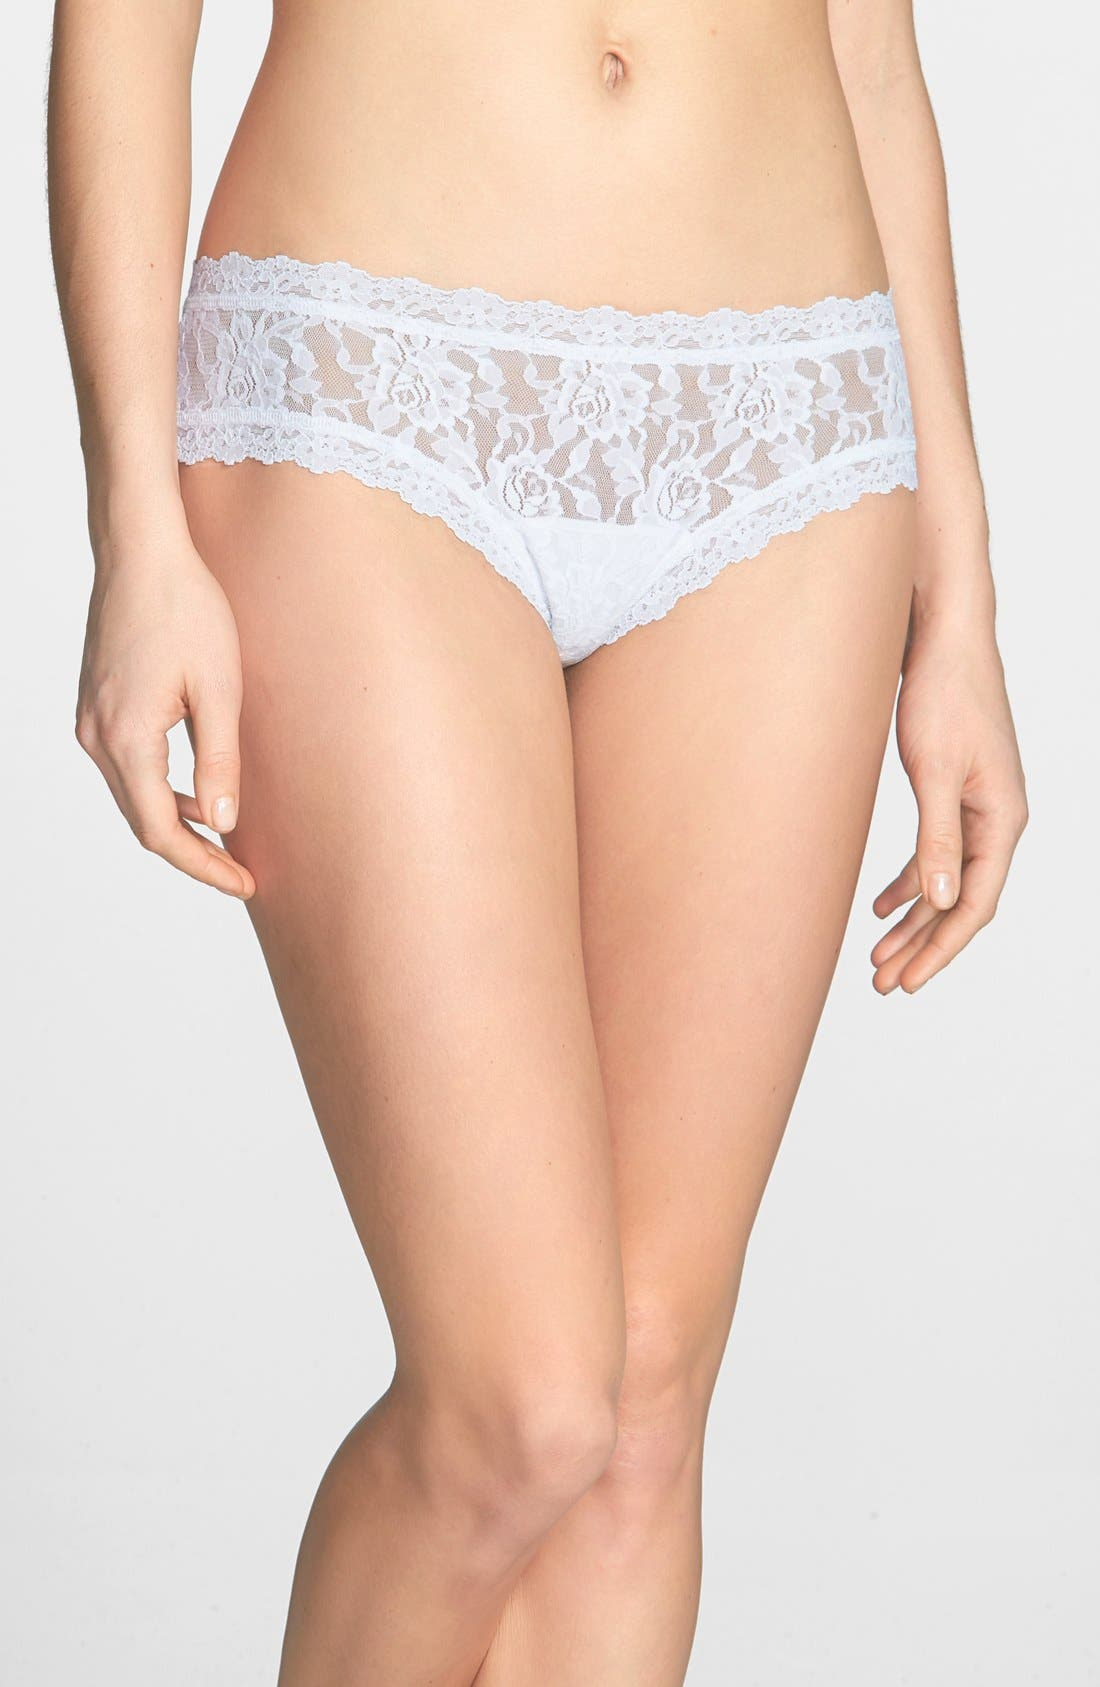 Alternate Image 1 Selected - Hanky Panky 'Just Married' Cheeky Hipster Briefs